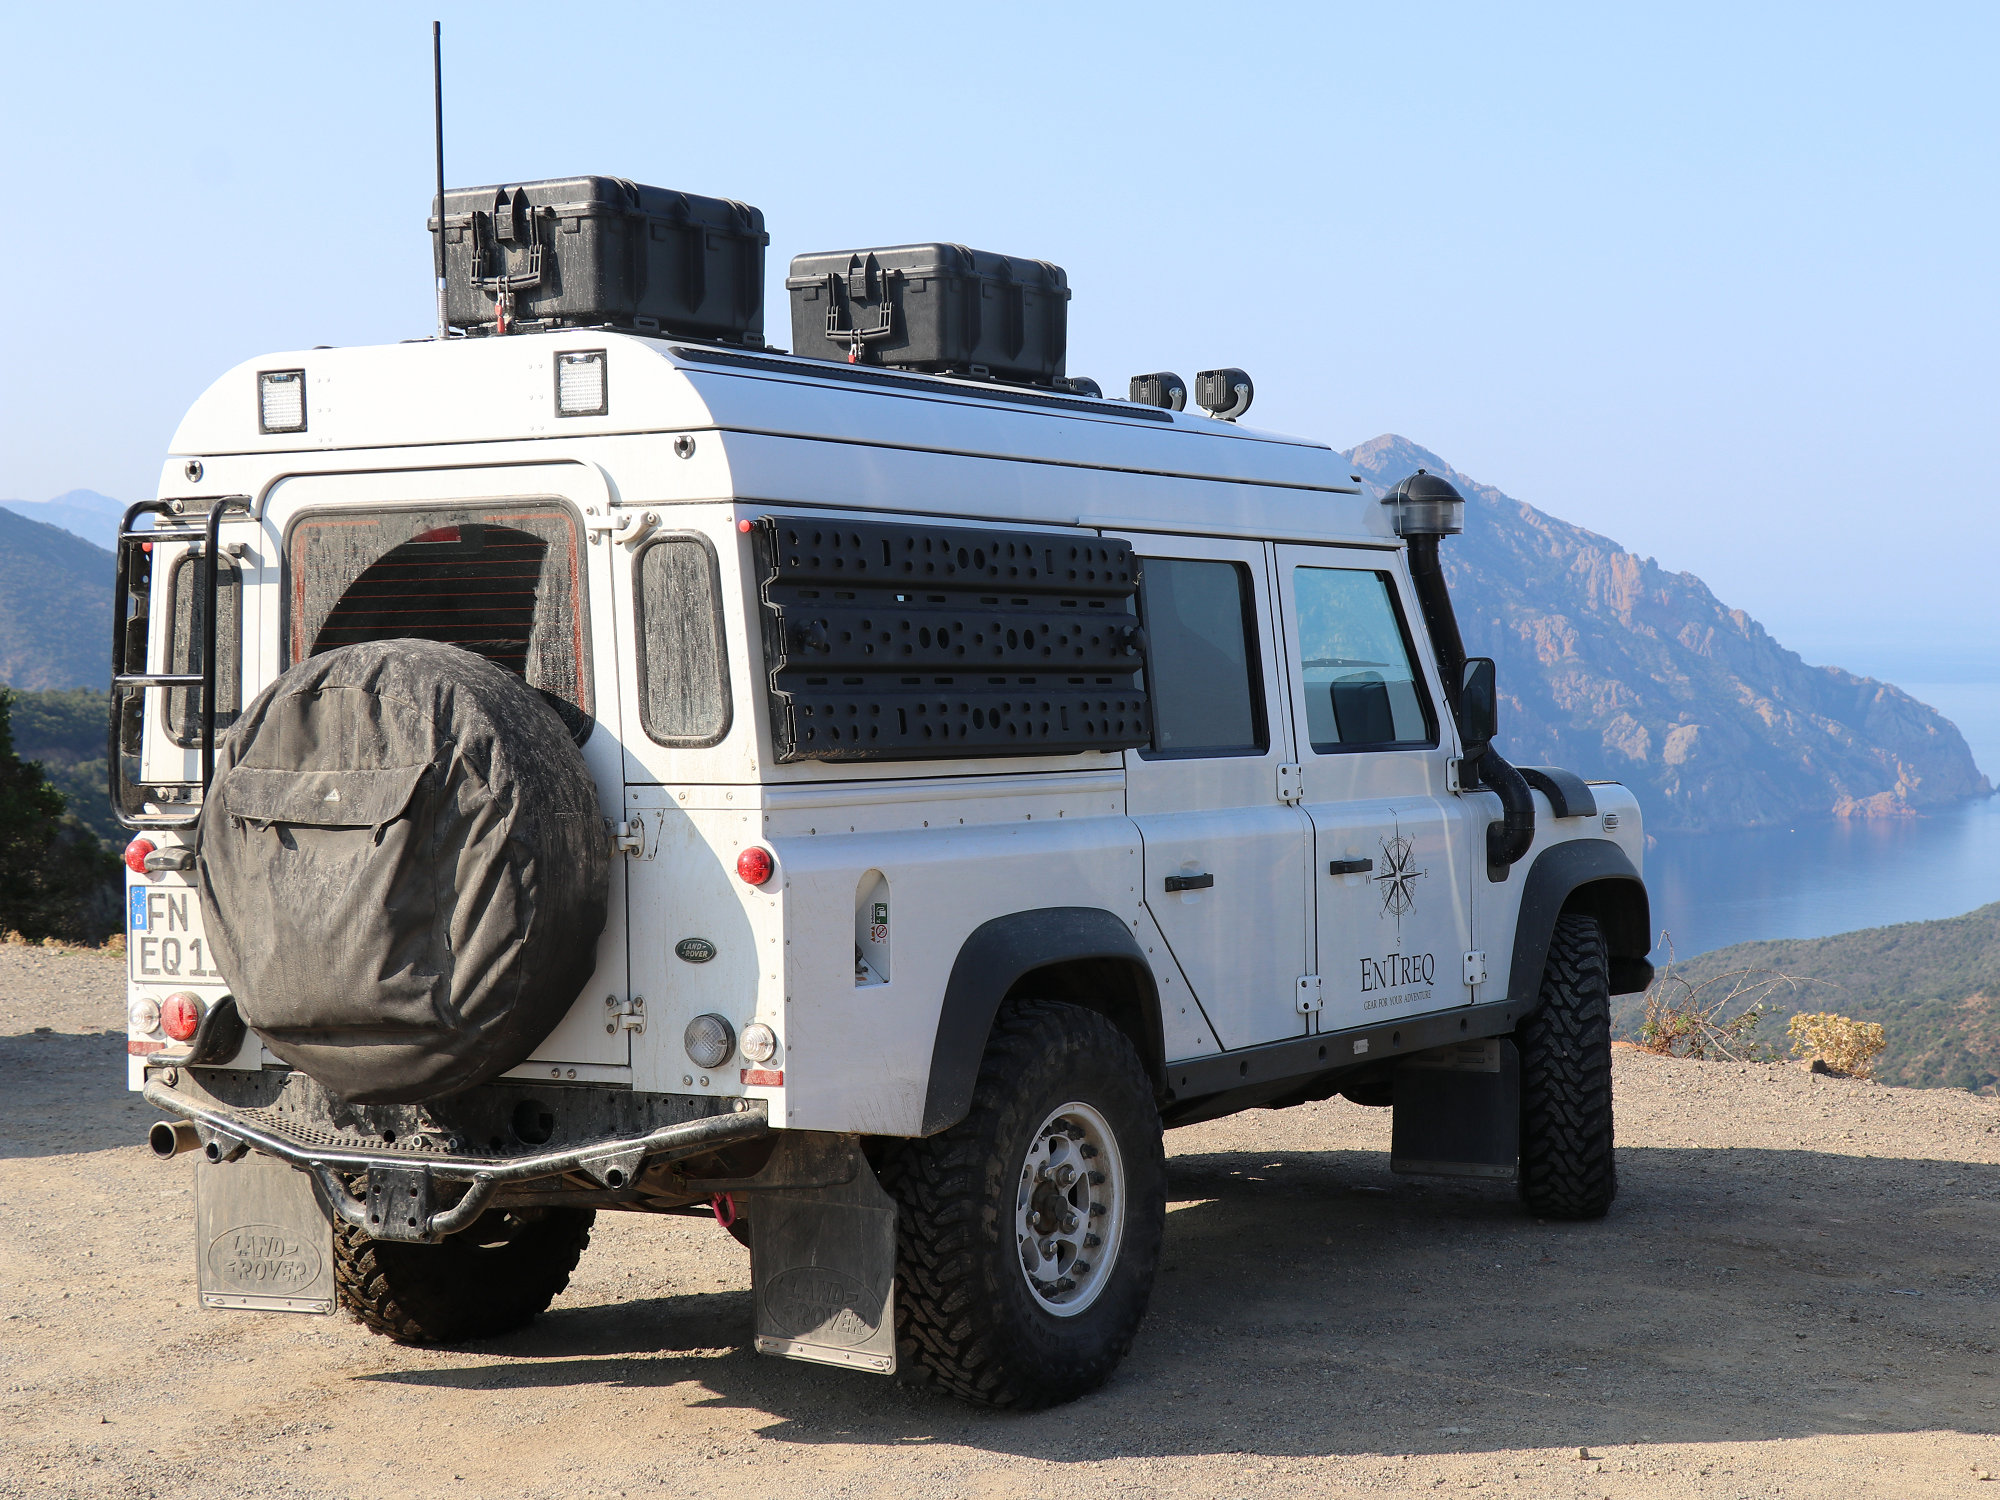 Expeditionskoffer Land Rover Defender.000